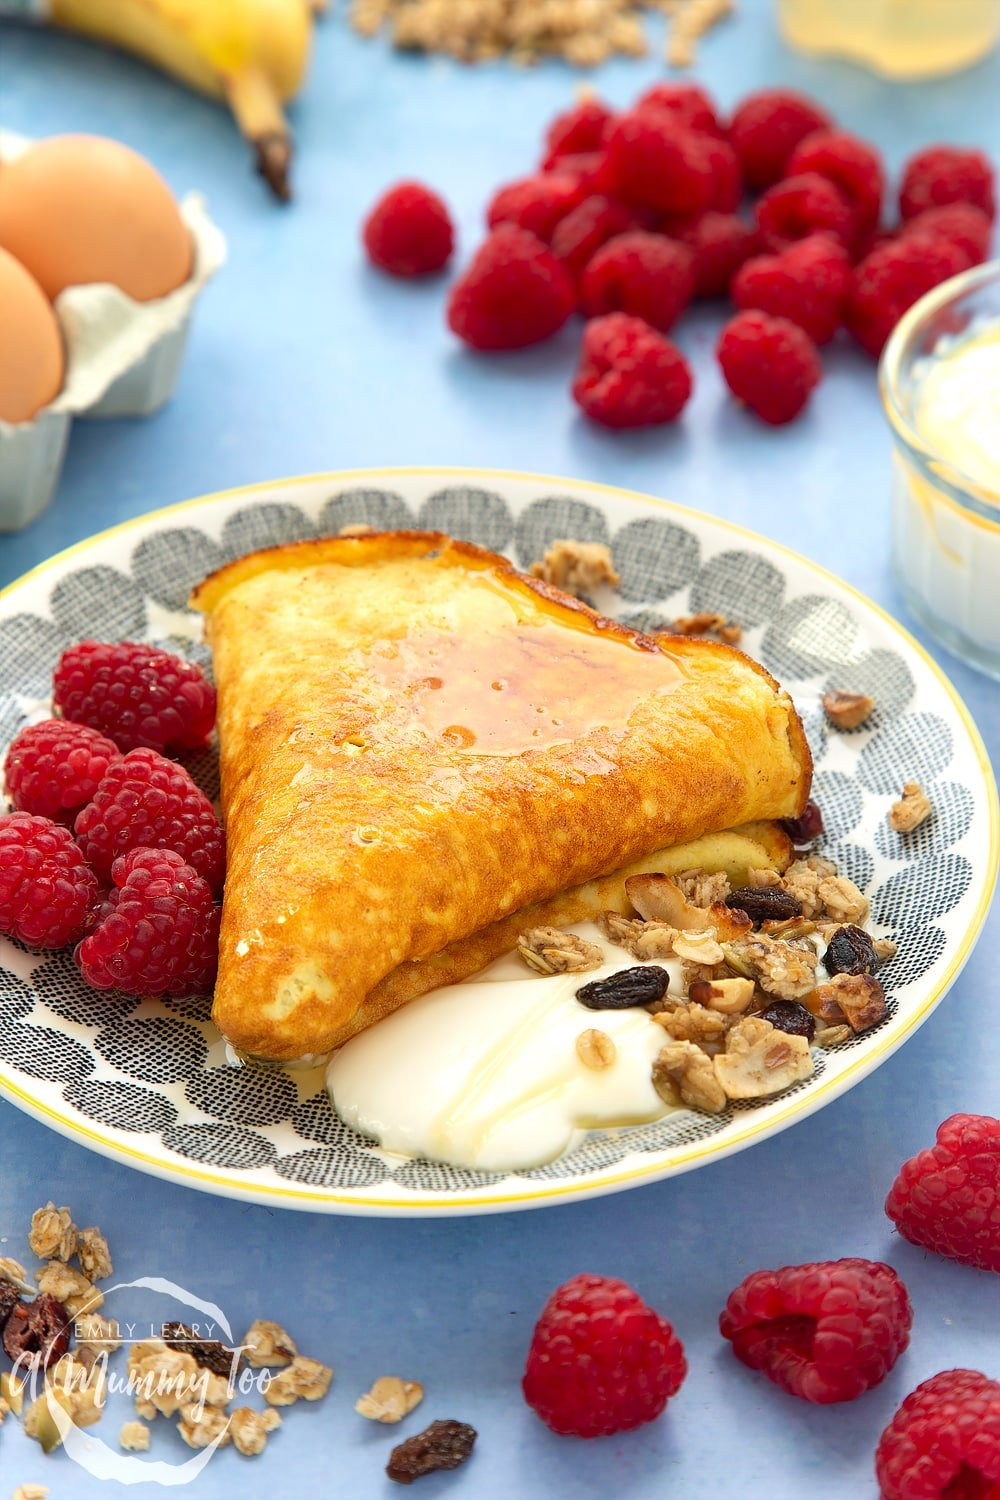 Sweet breakfast omelette, folded and served to a plate with yogurt, granola and raspberries